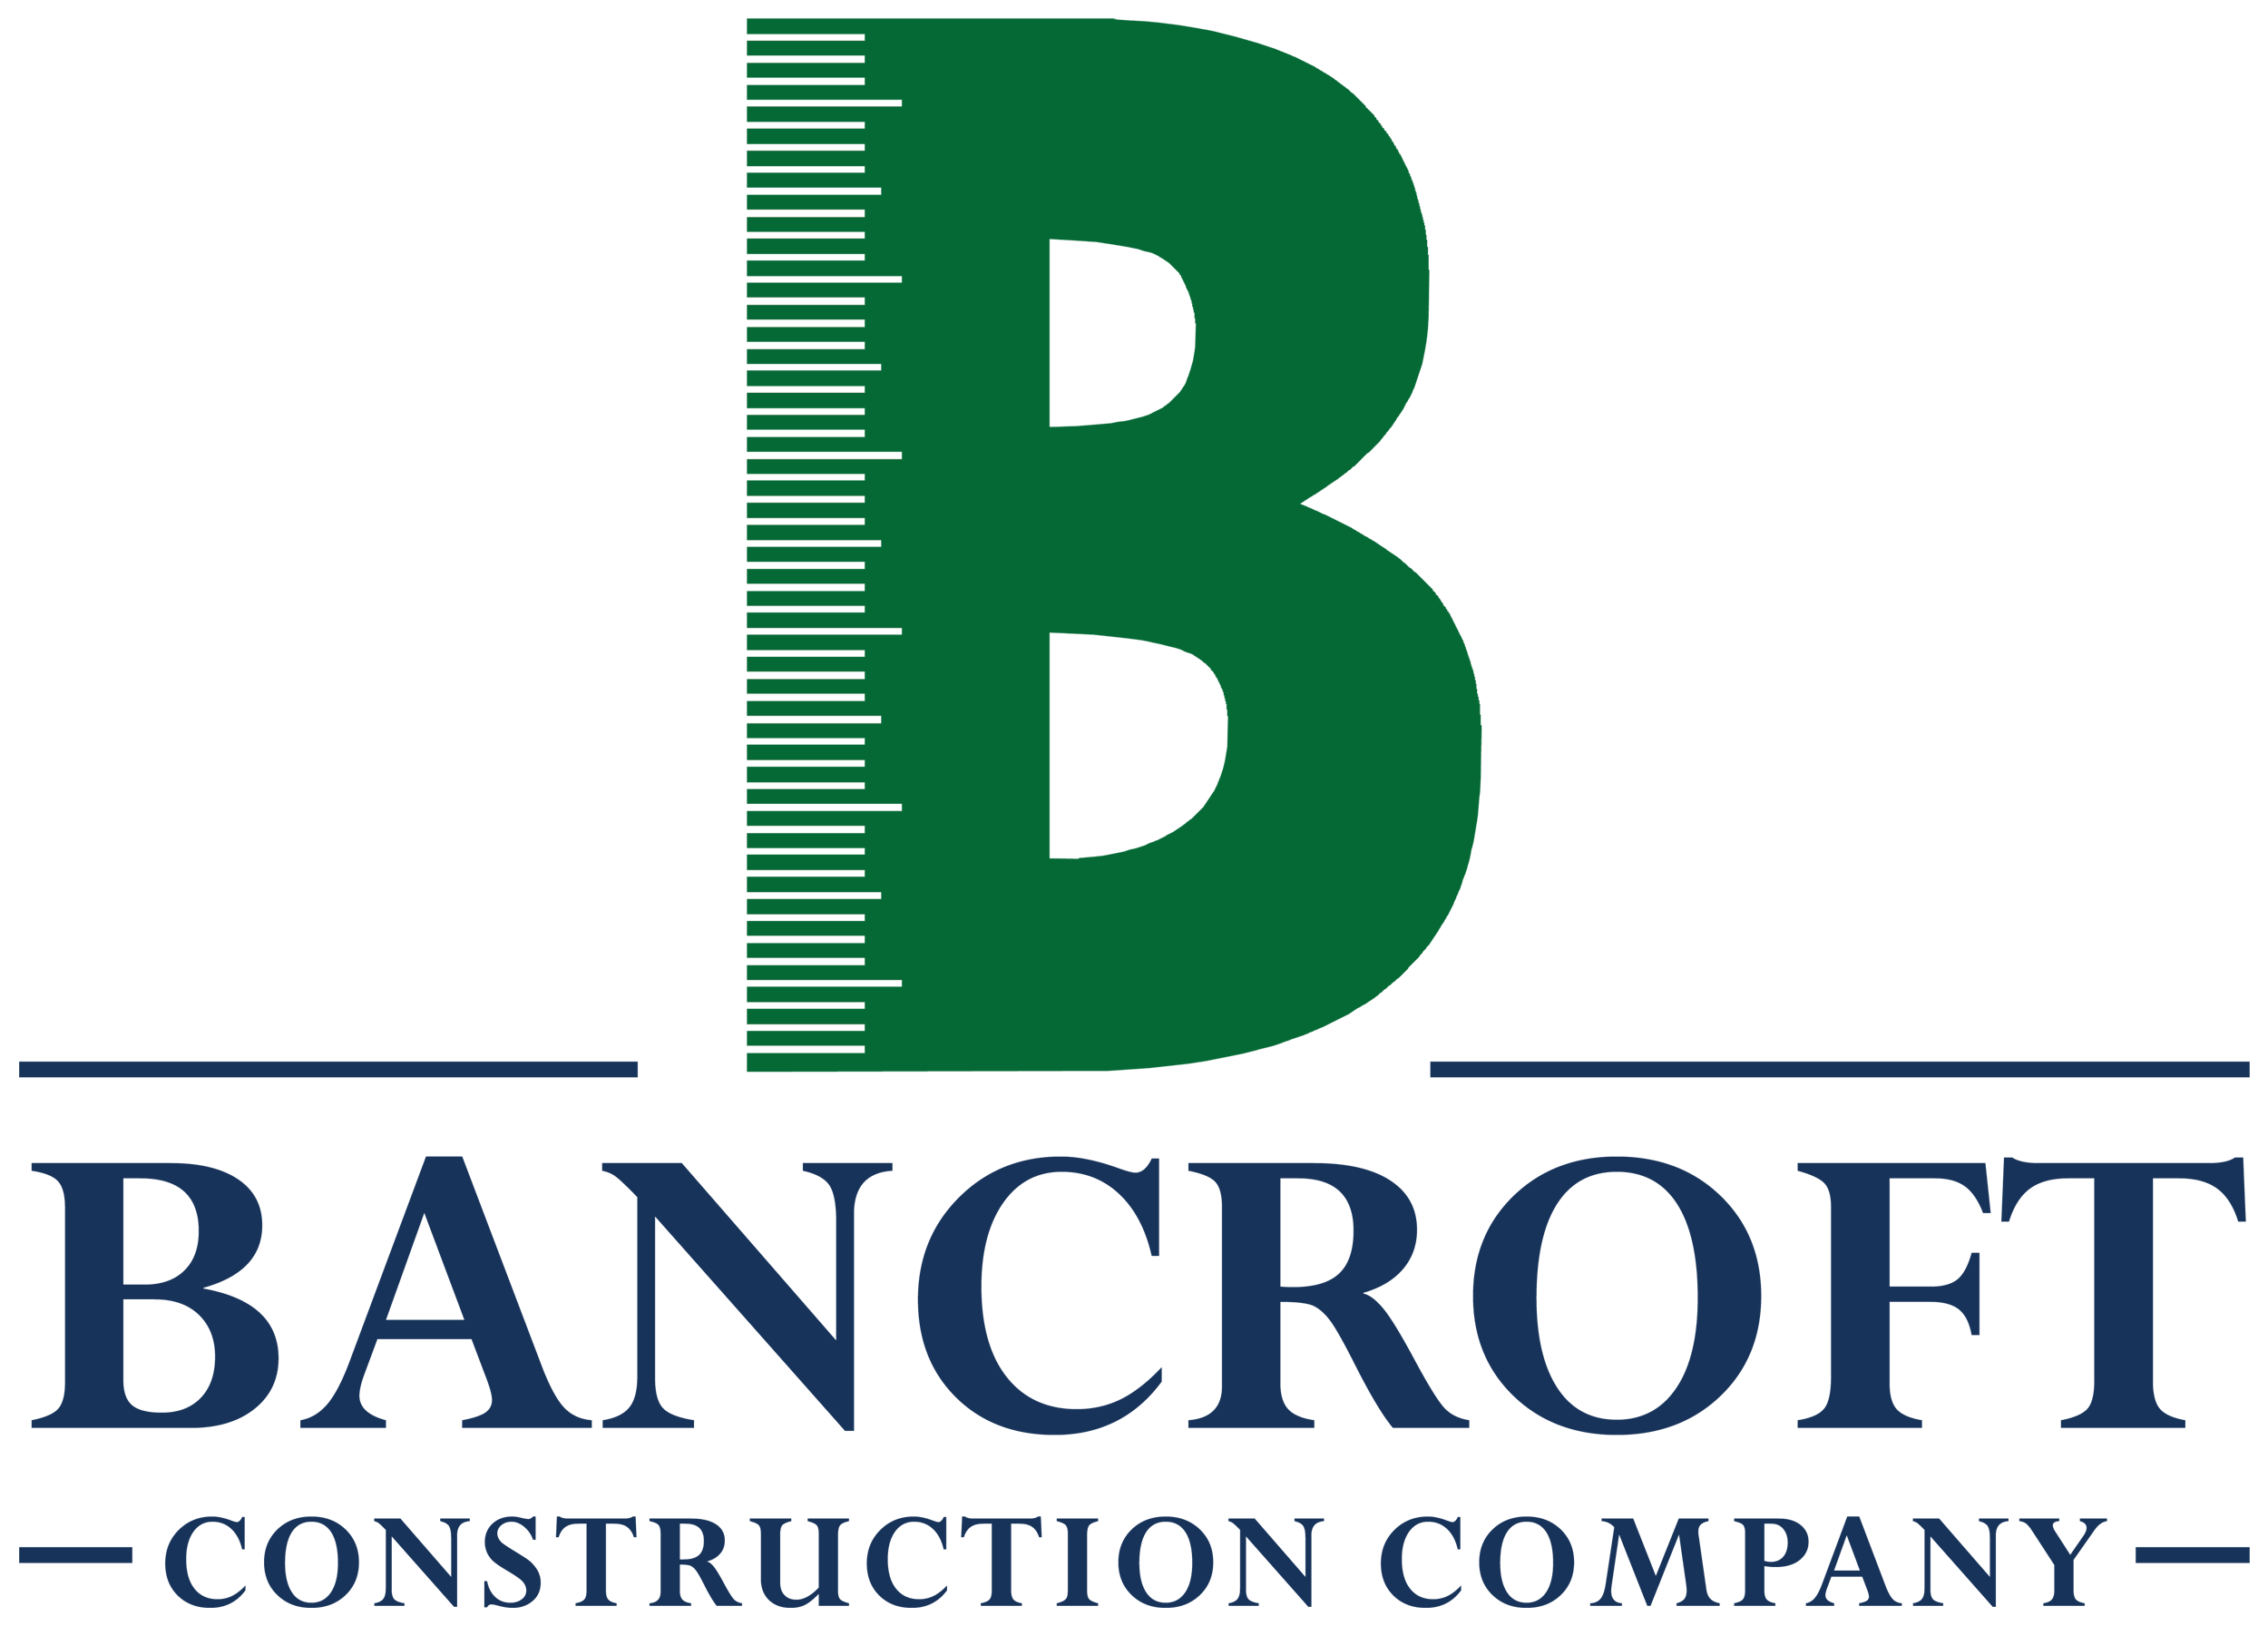 Bancroft Construction Company